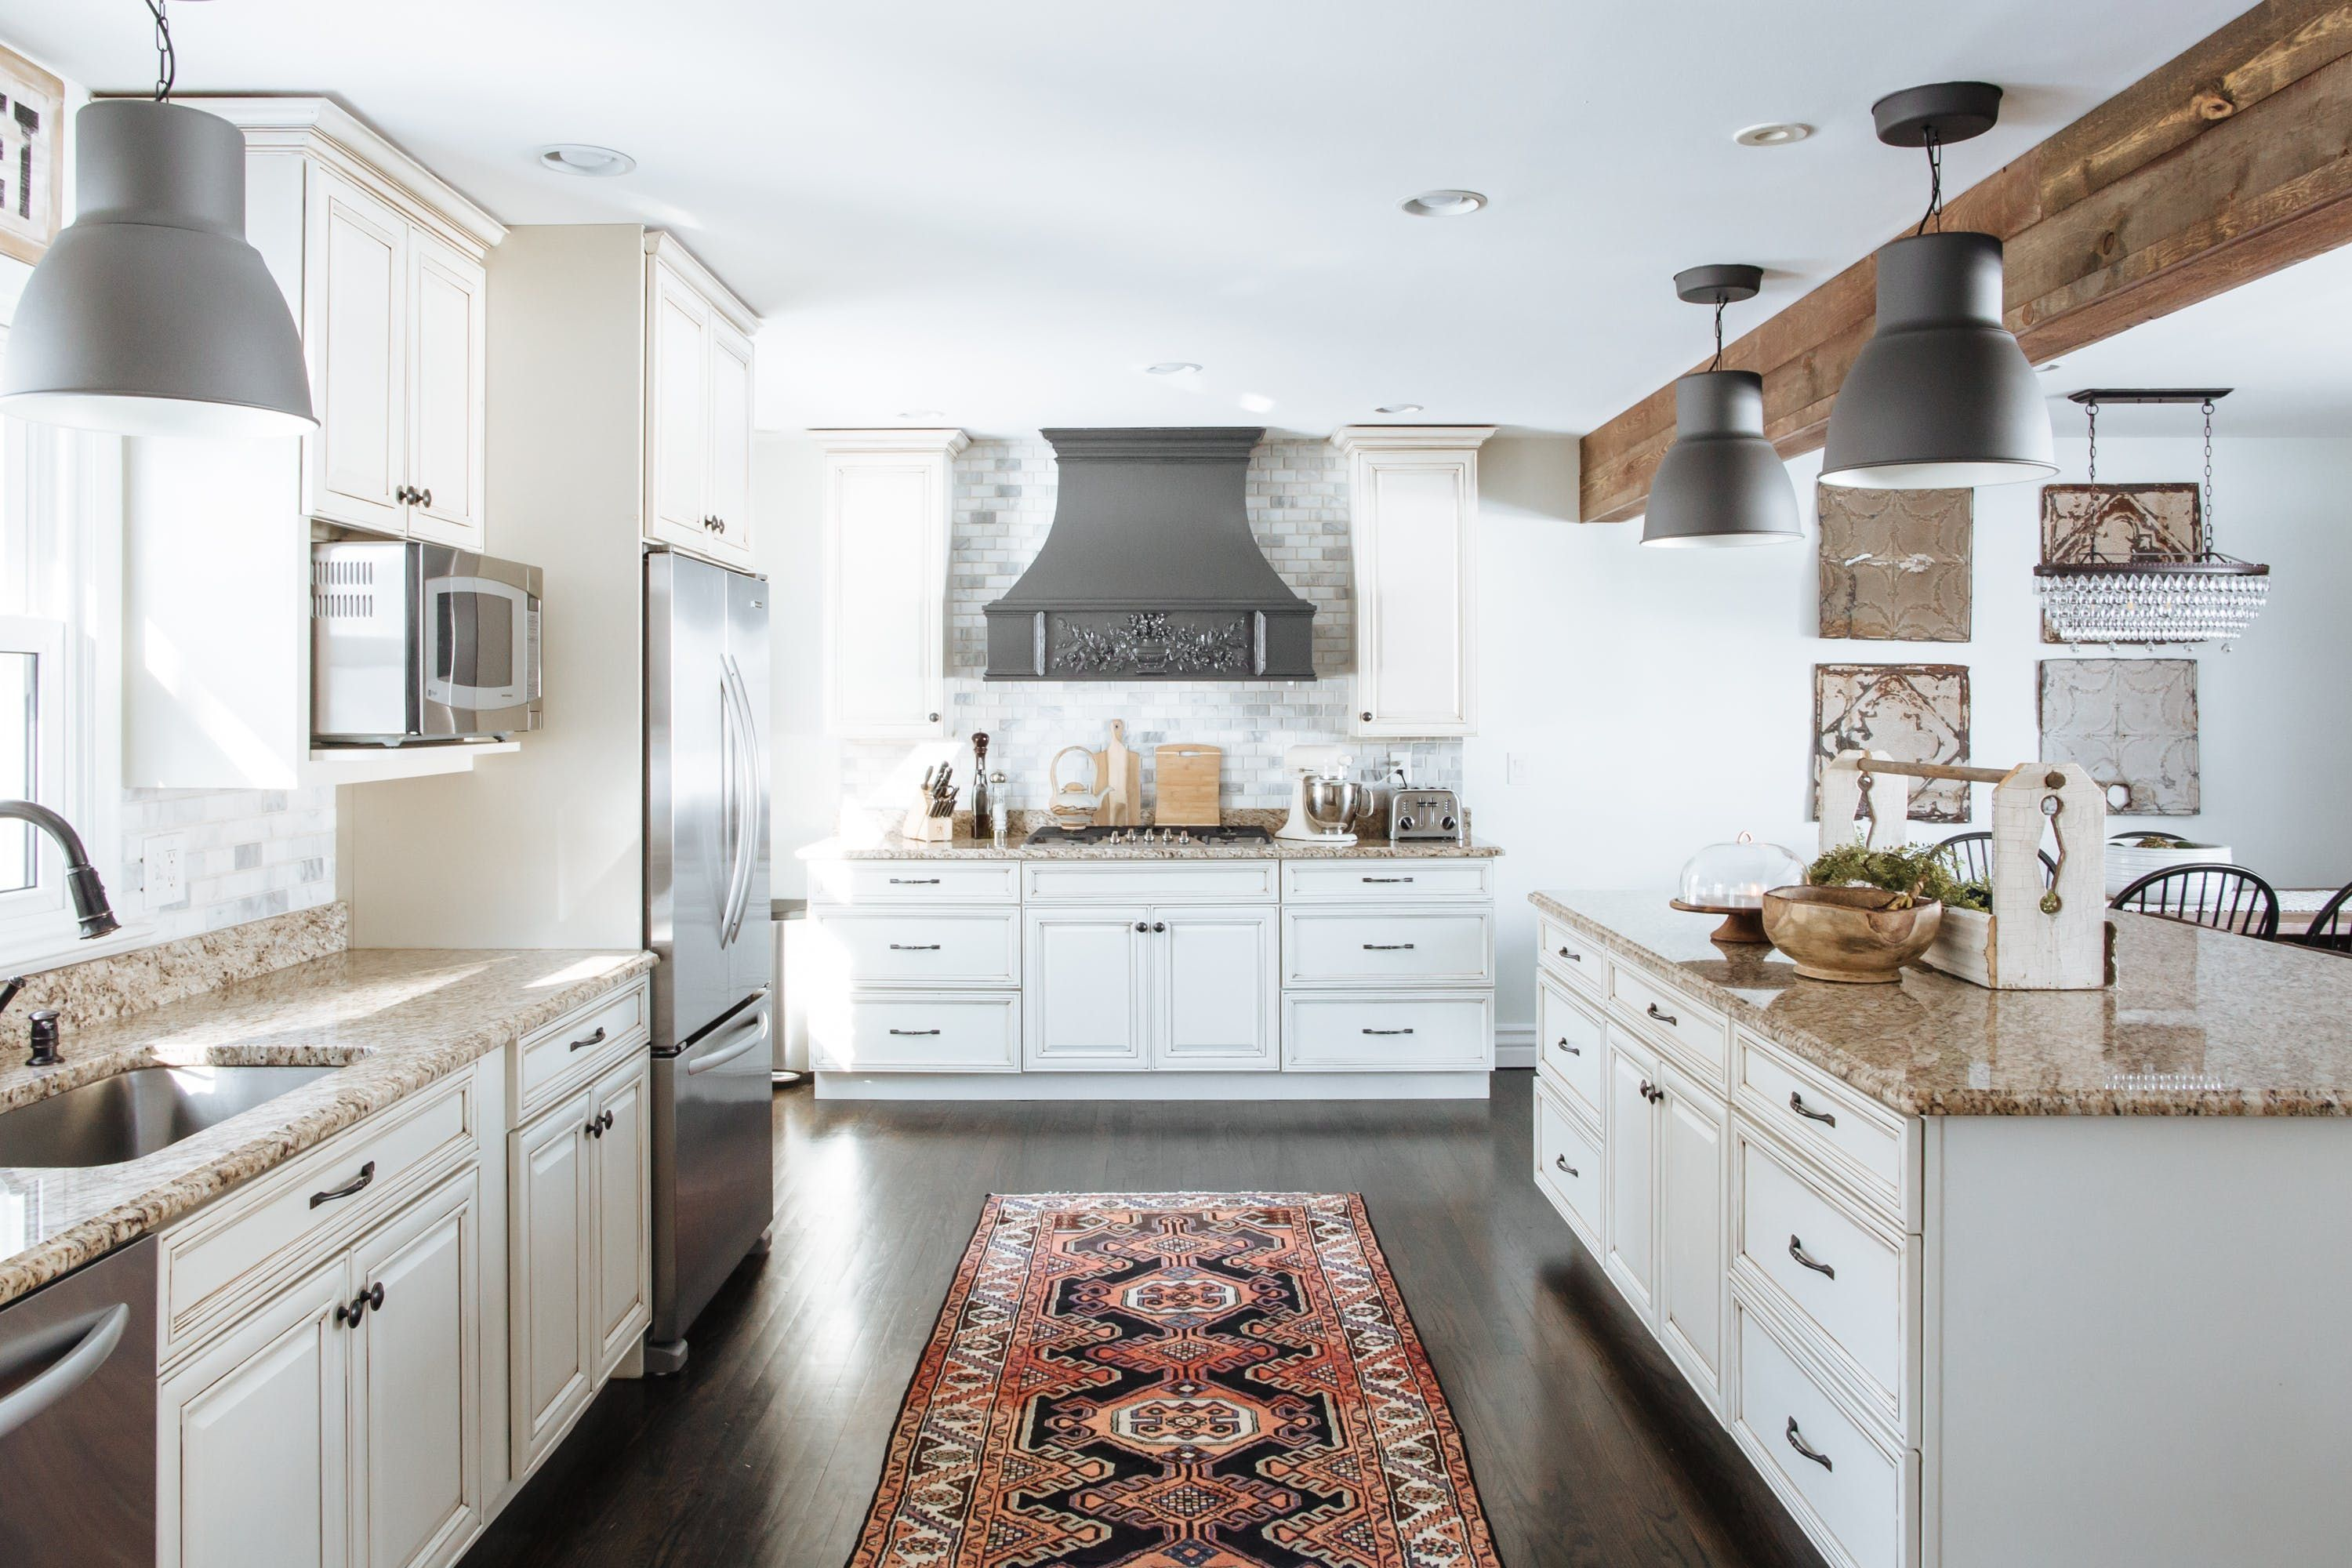 Lauren Says Her Favorite DIY Is Designing The Layout To Turn Three Rooms In Home